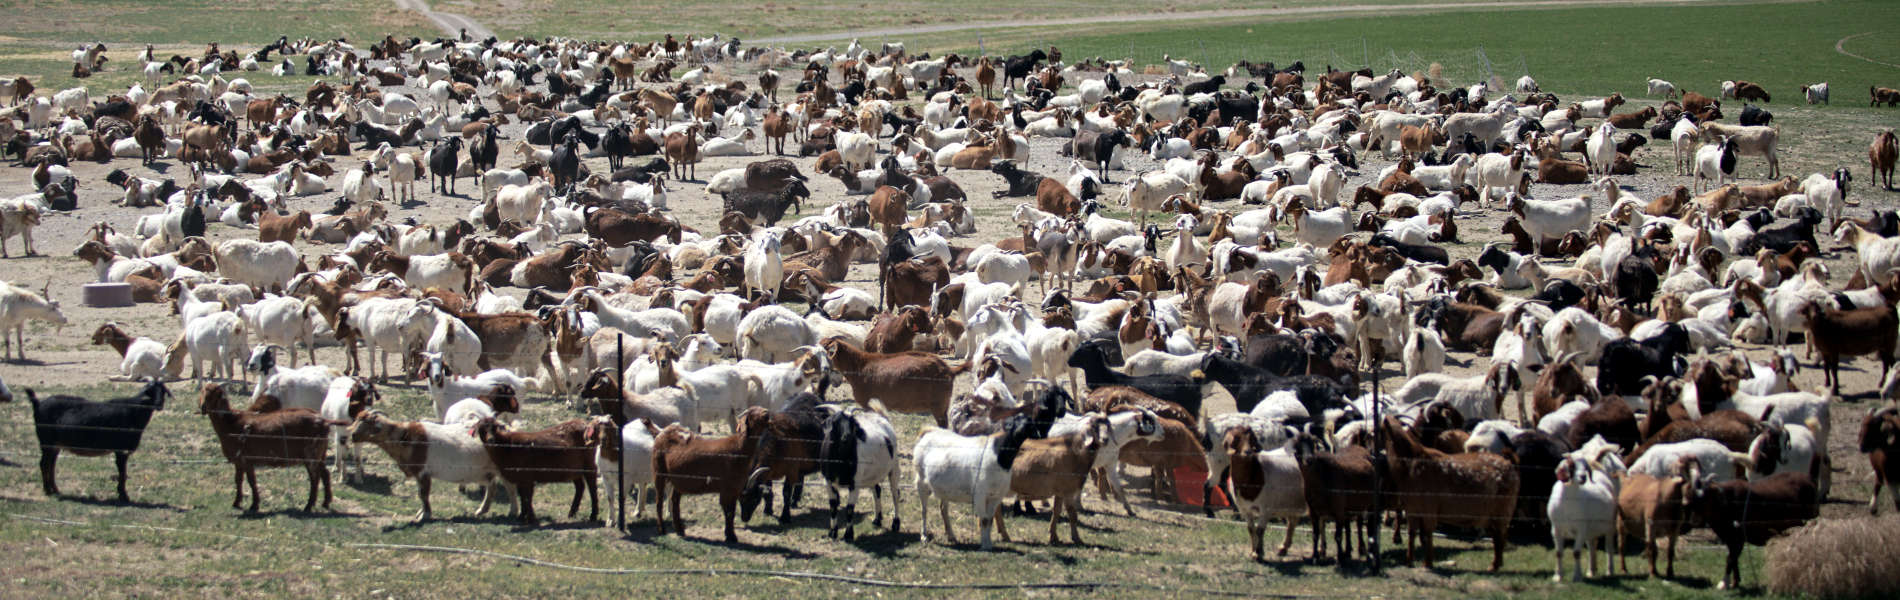 Boer Goats for Meat, Breeding, and Noxious Weed Control